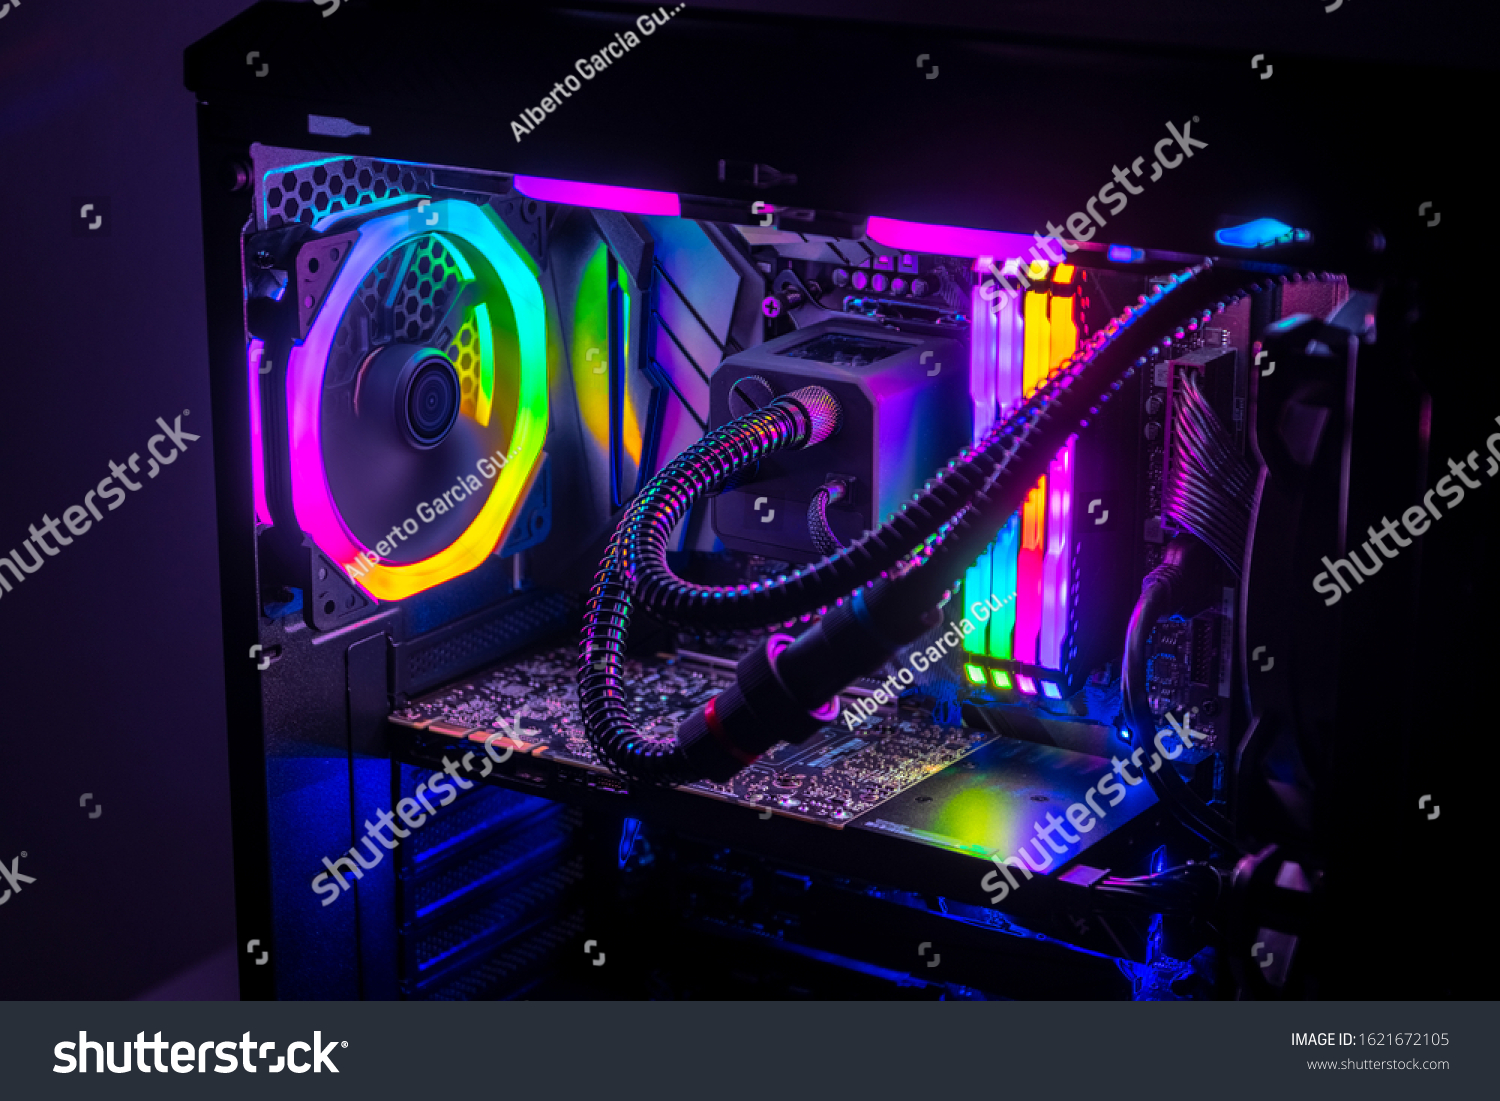 Gaming PC with RGB LED lights on a computer, assembled with hardware components #1621672105